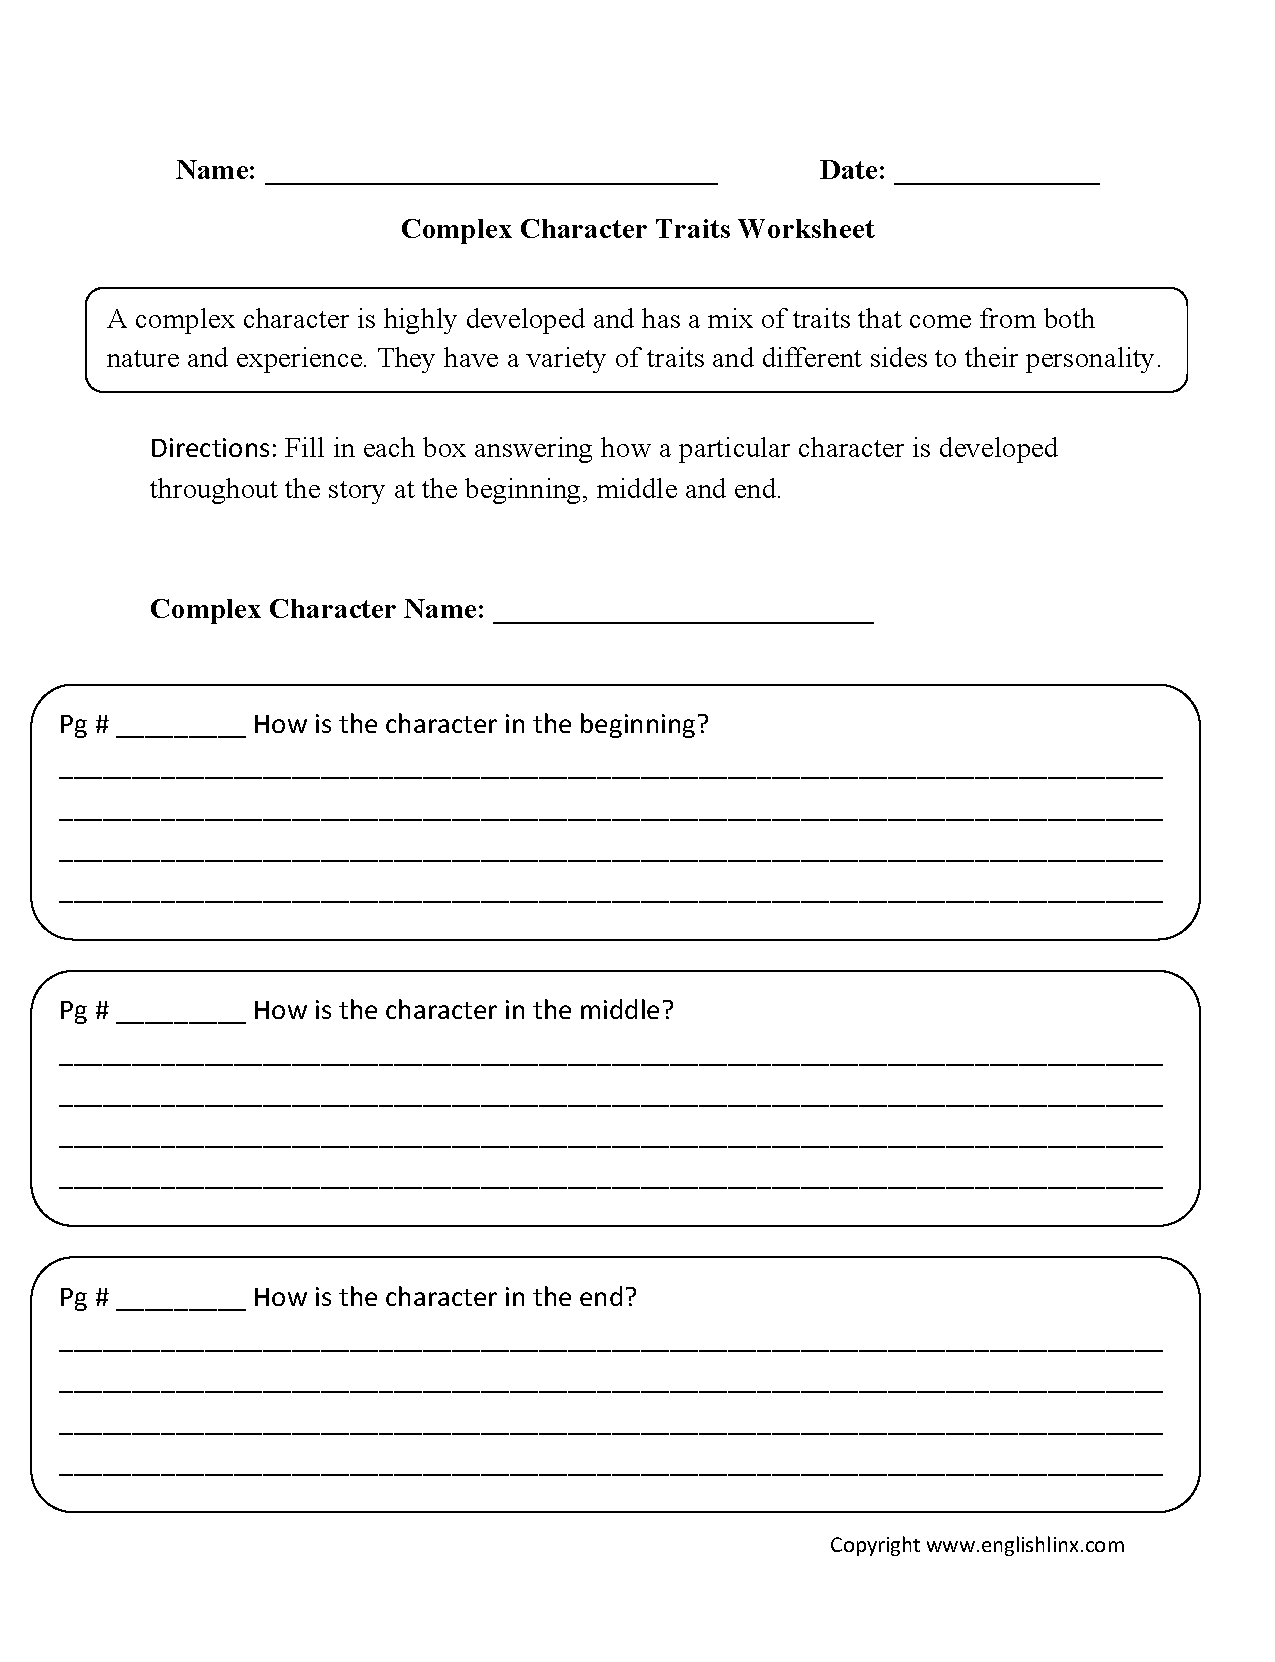 Worksheets Character Sketch Worksheet reading worksheets character traits complex worksheets